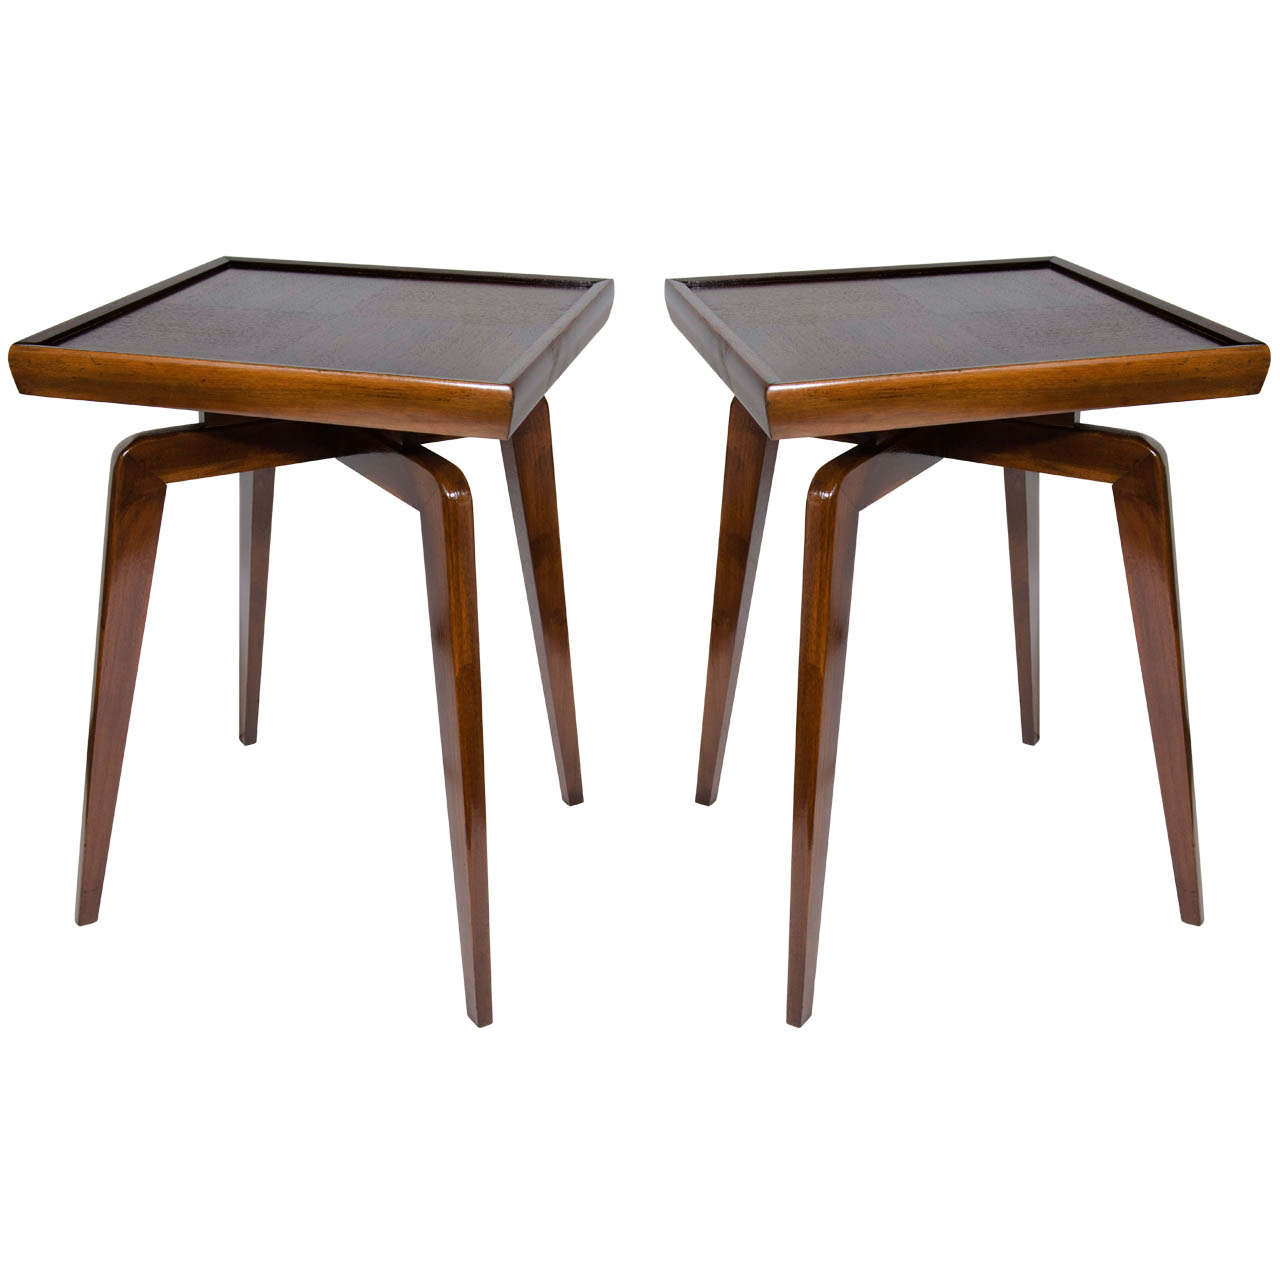 Pair of mid century modern walnut wood side tables with Modern side table